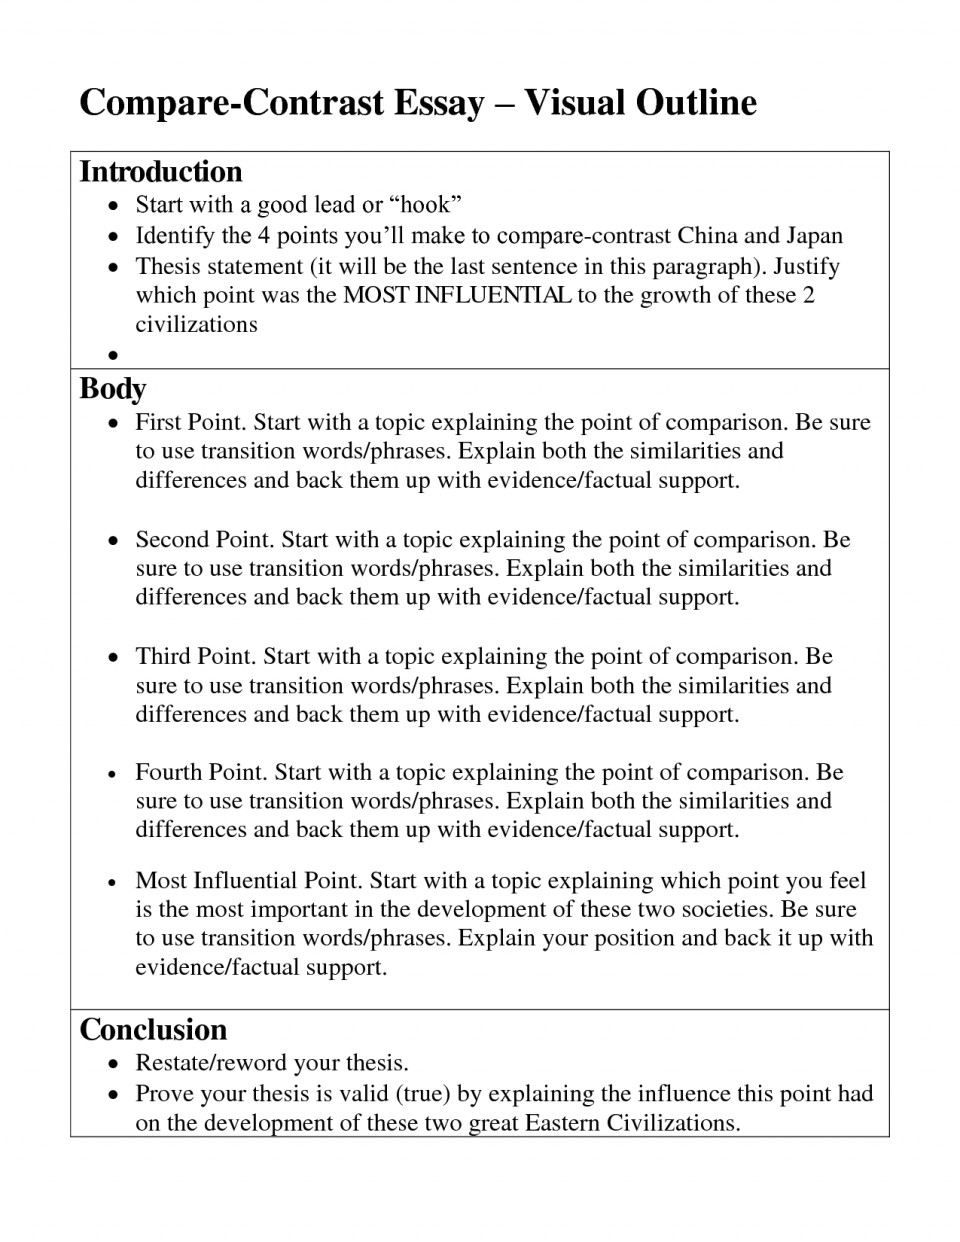 005 How To Write Compare And Contrast Essay Outstanding A Format Block Conclusion Paragraph For Examples 960